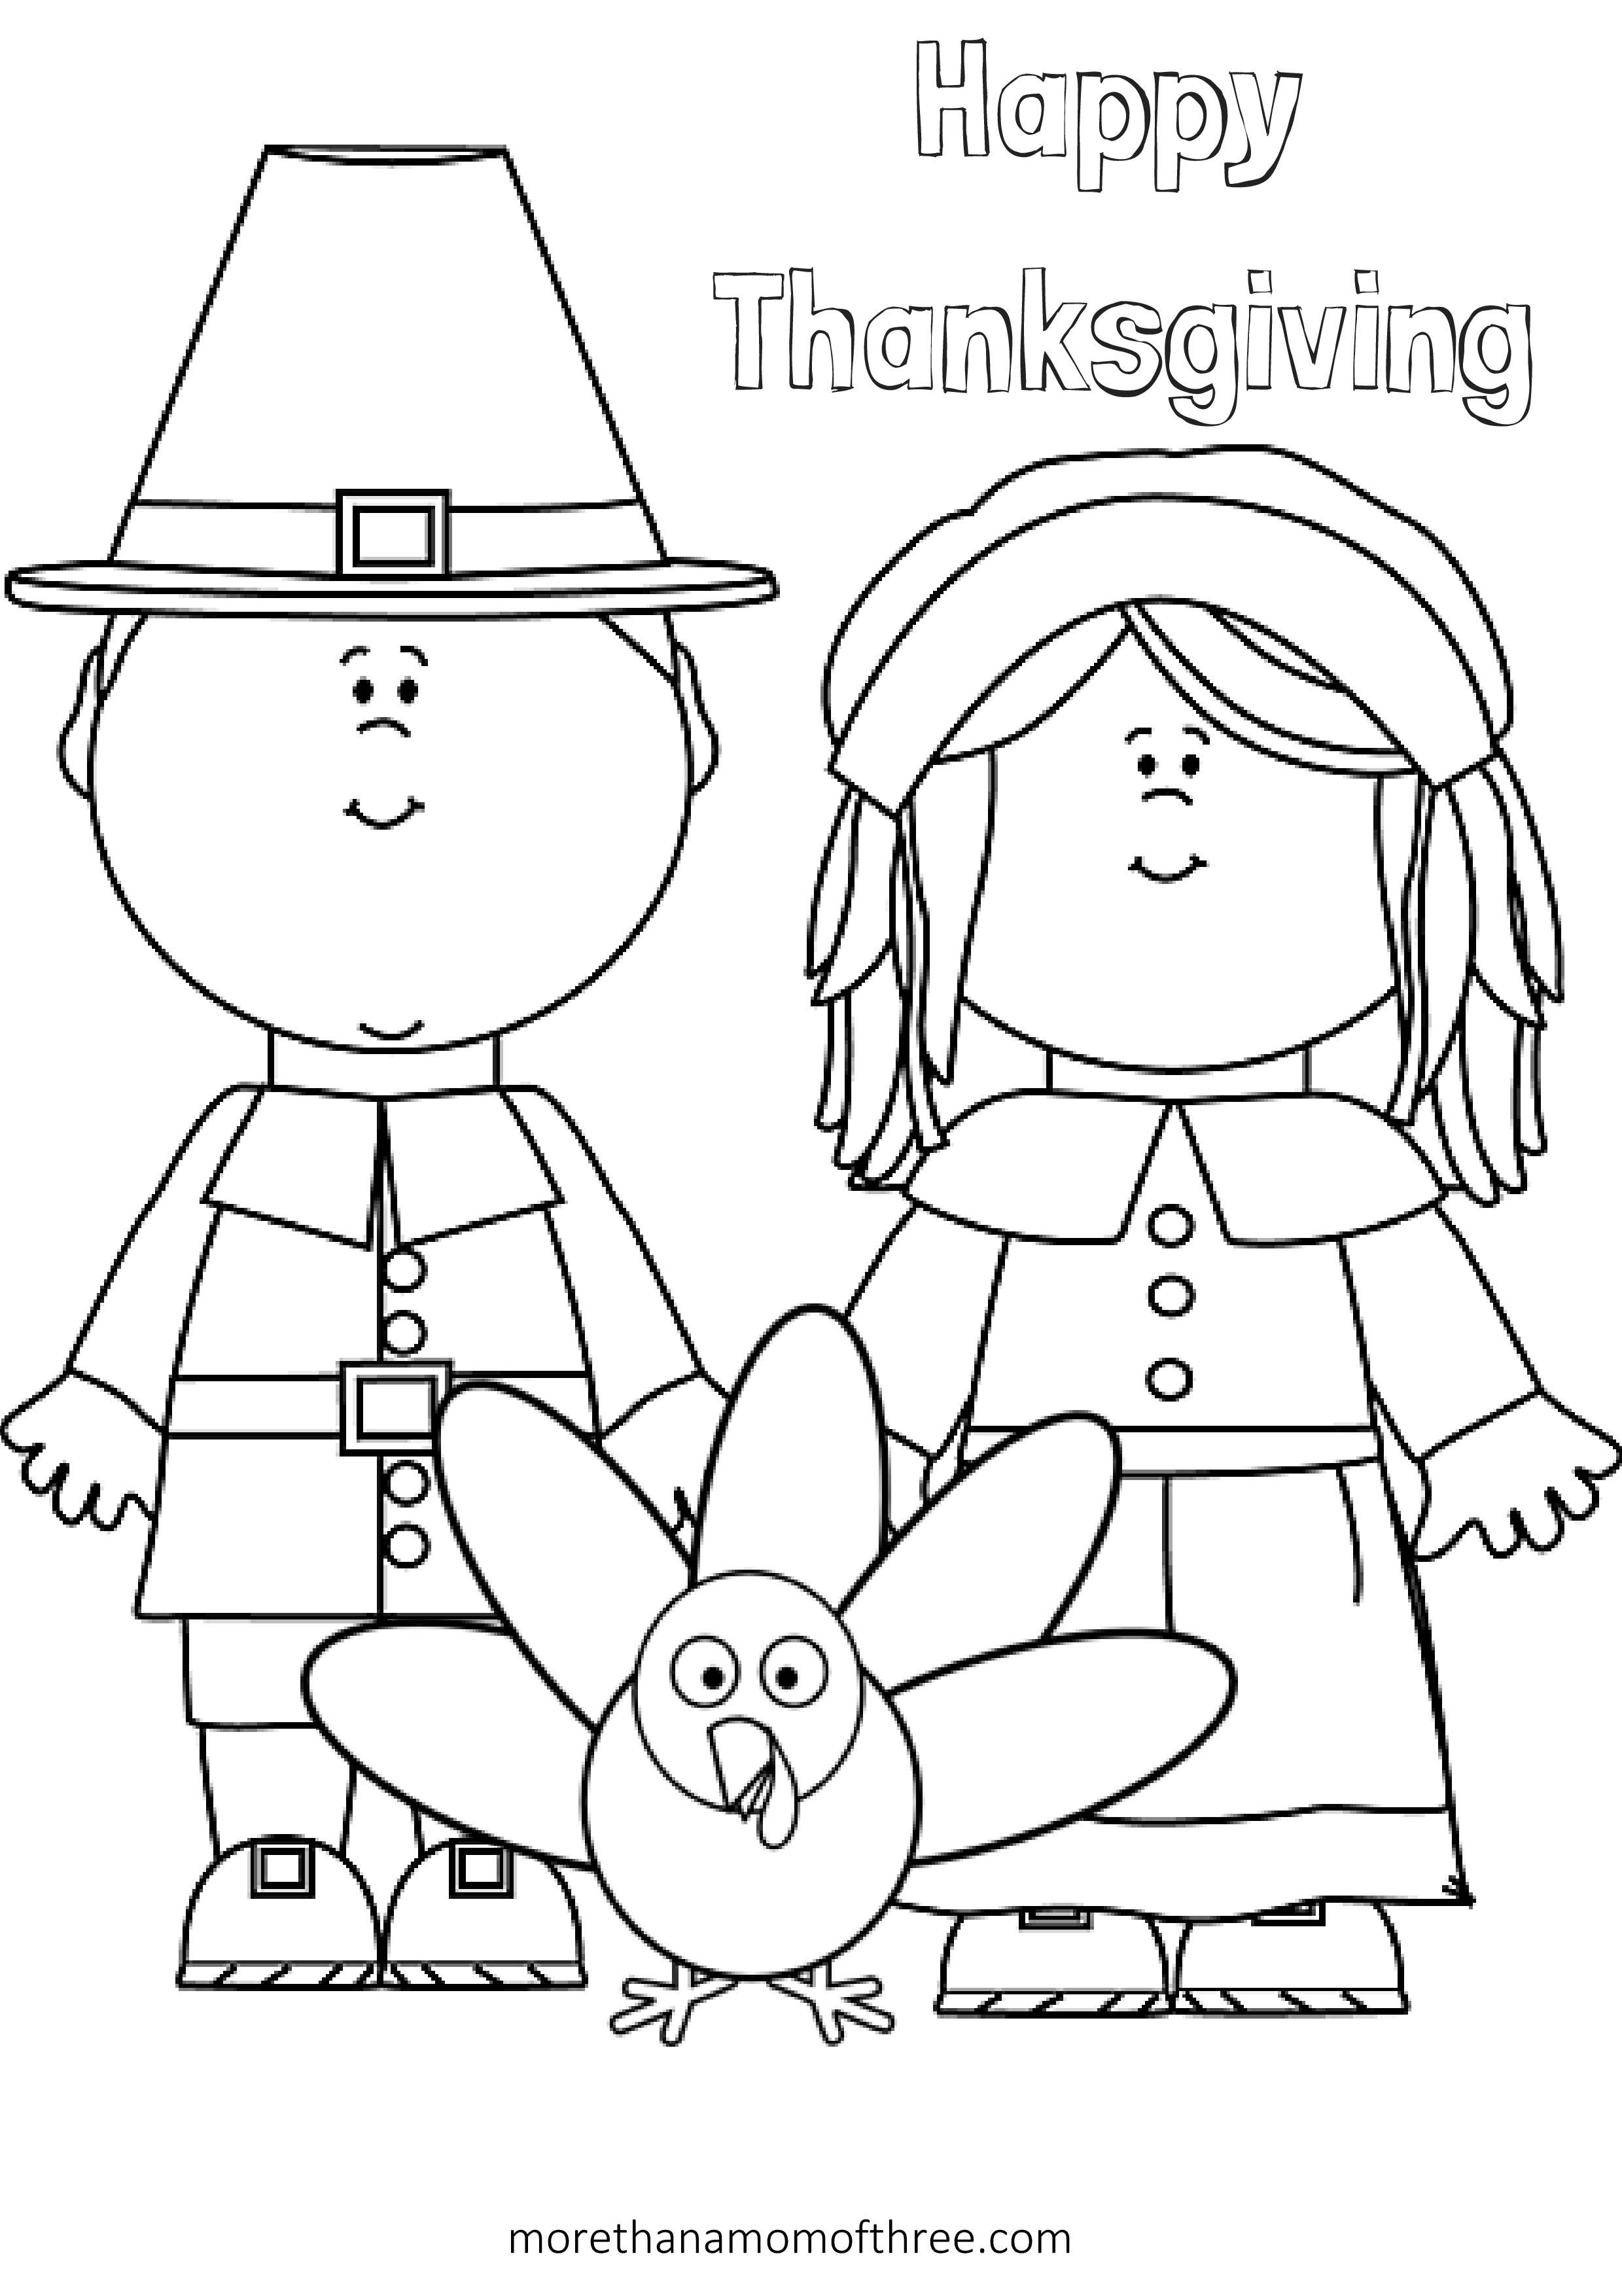 Free Thanksgiving Coloring Pages Printables For Kids | Thanksgiving ...